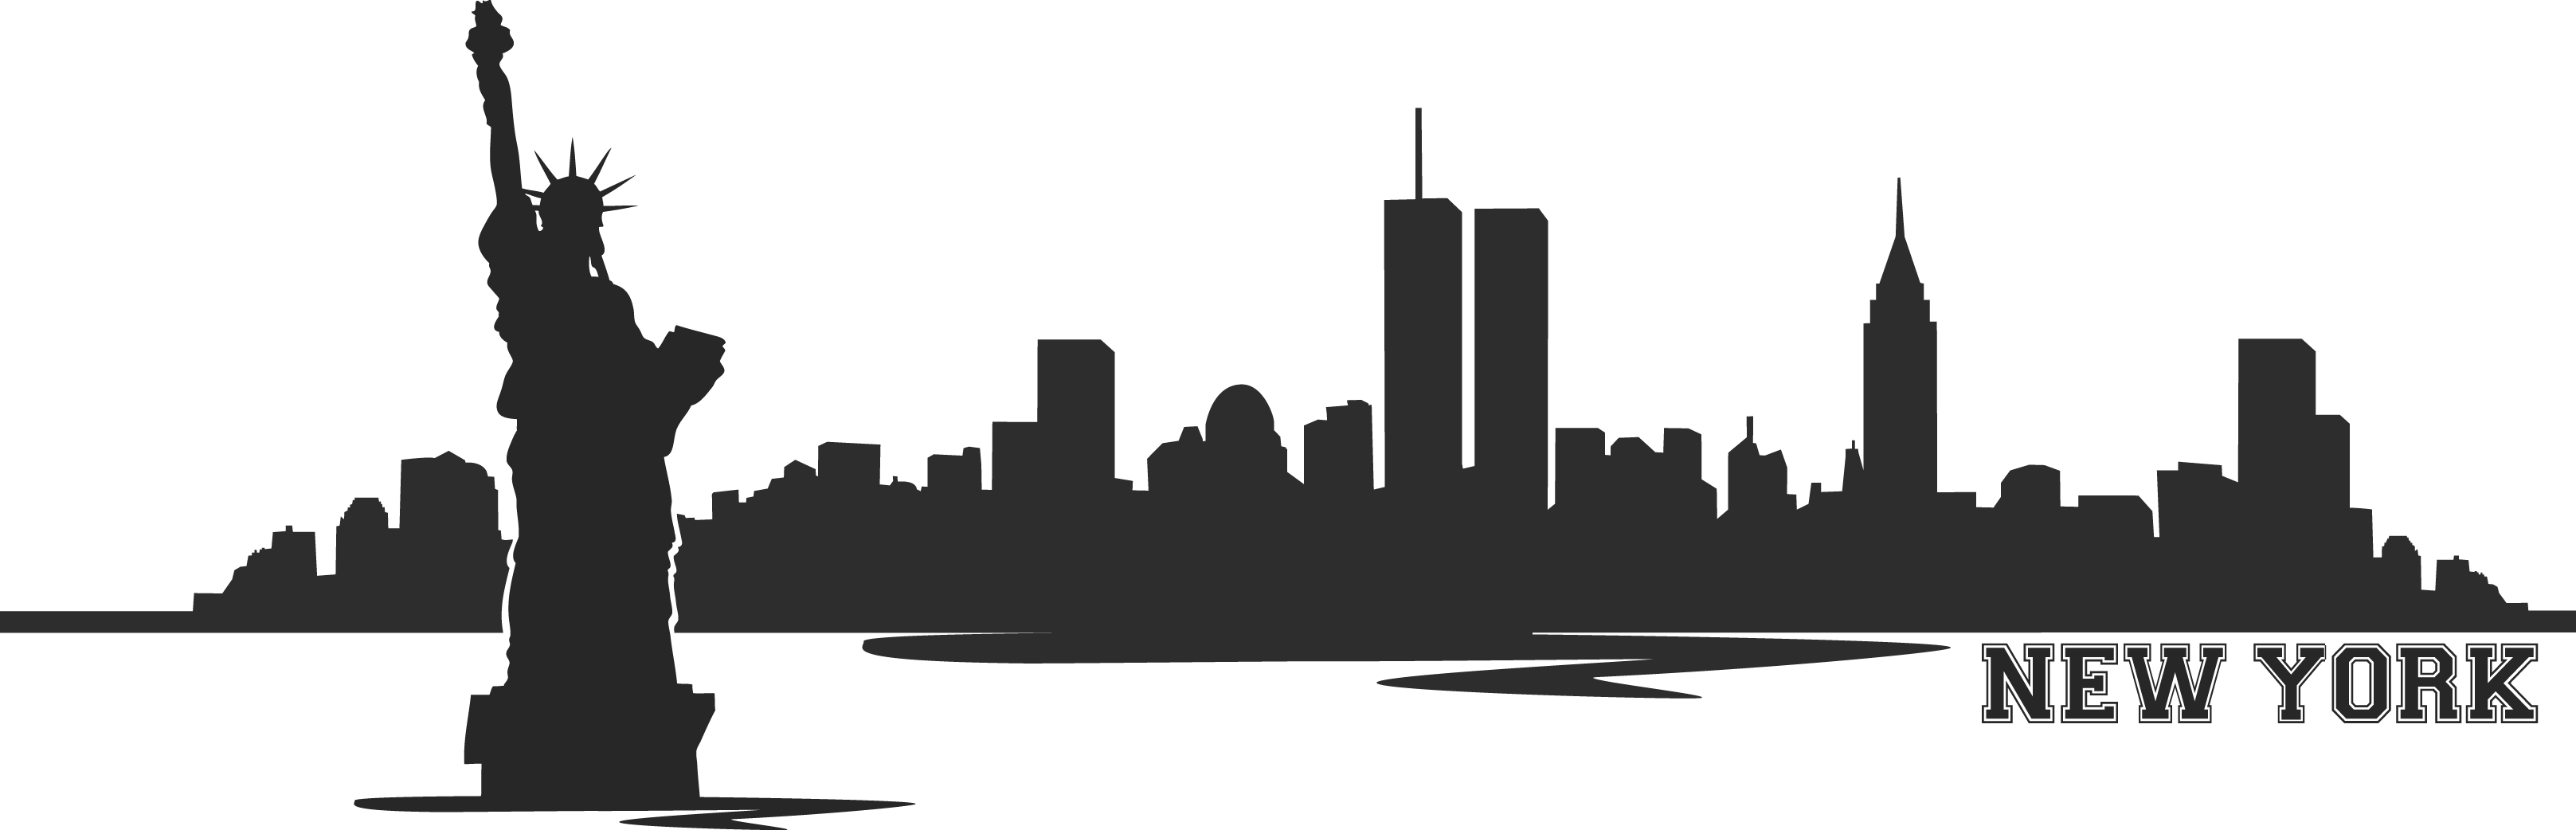 New york clipart - Clipground